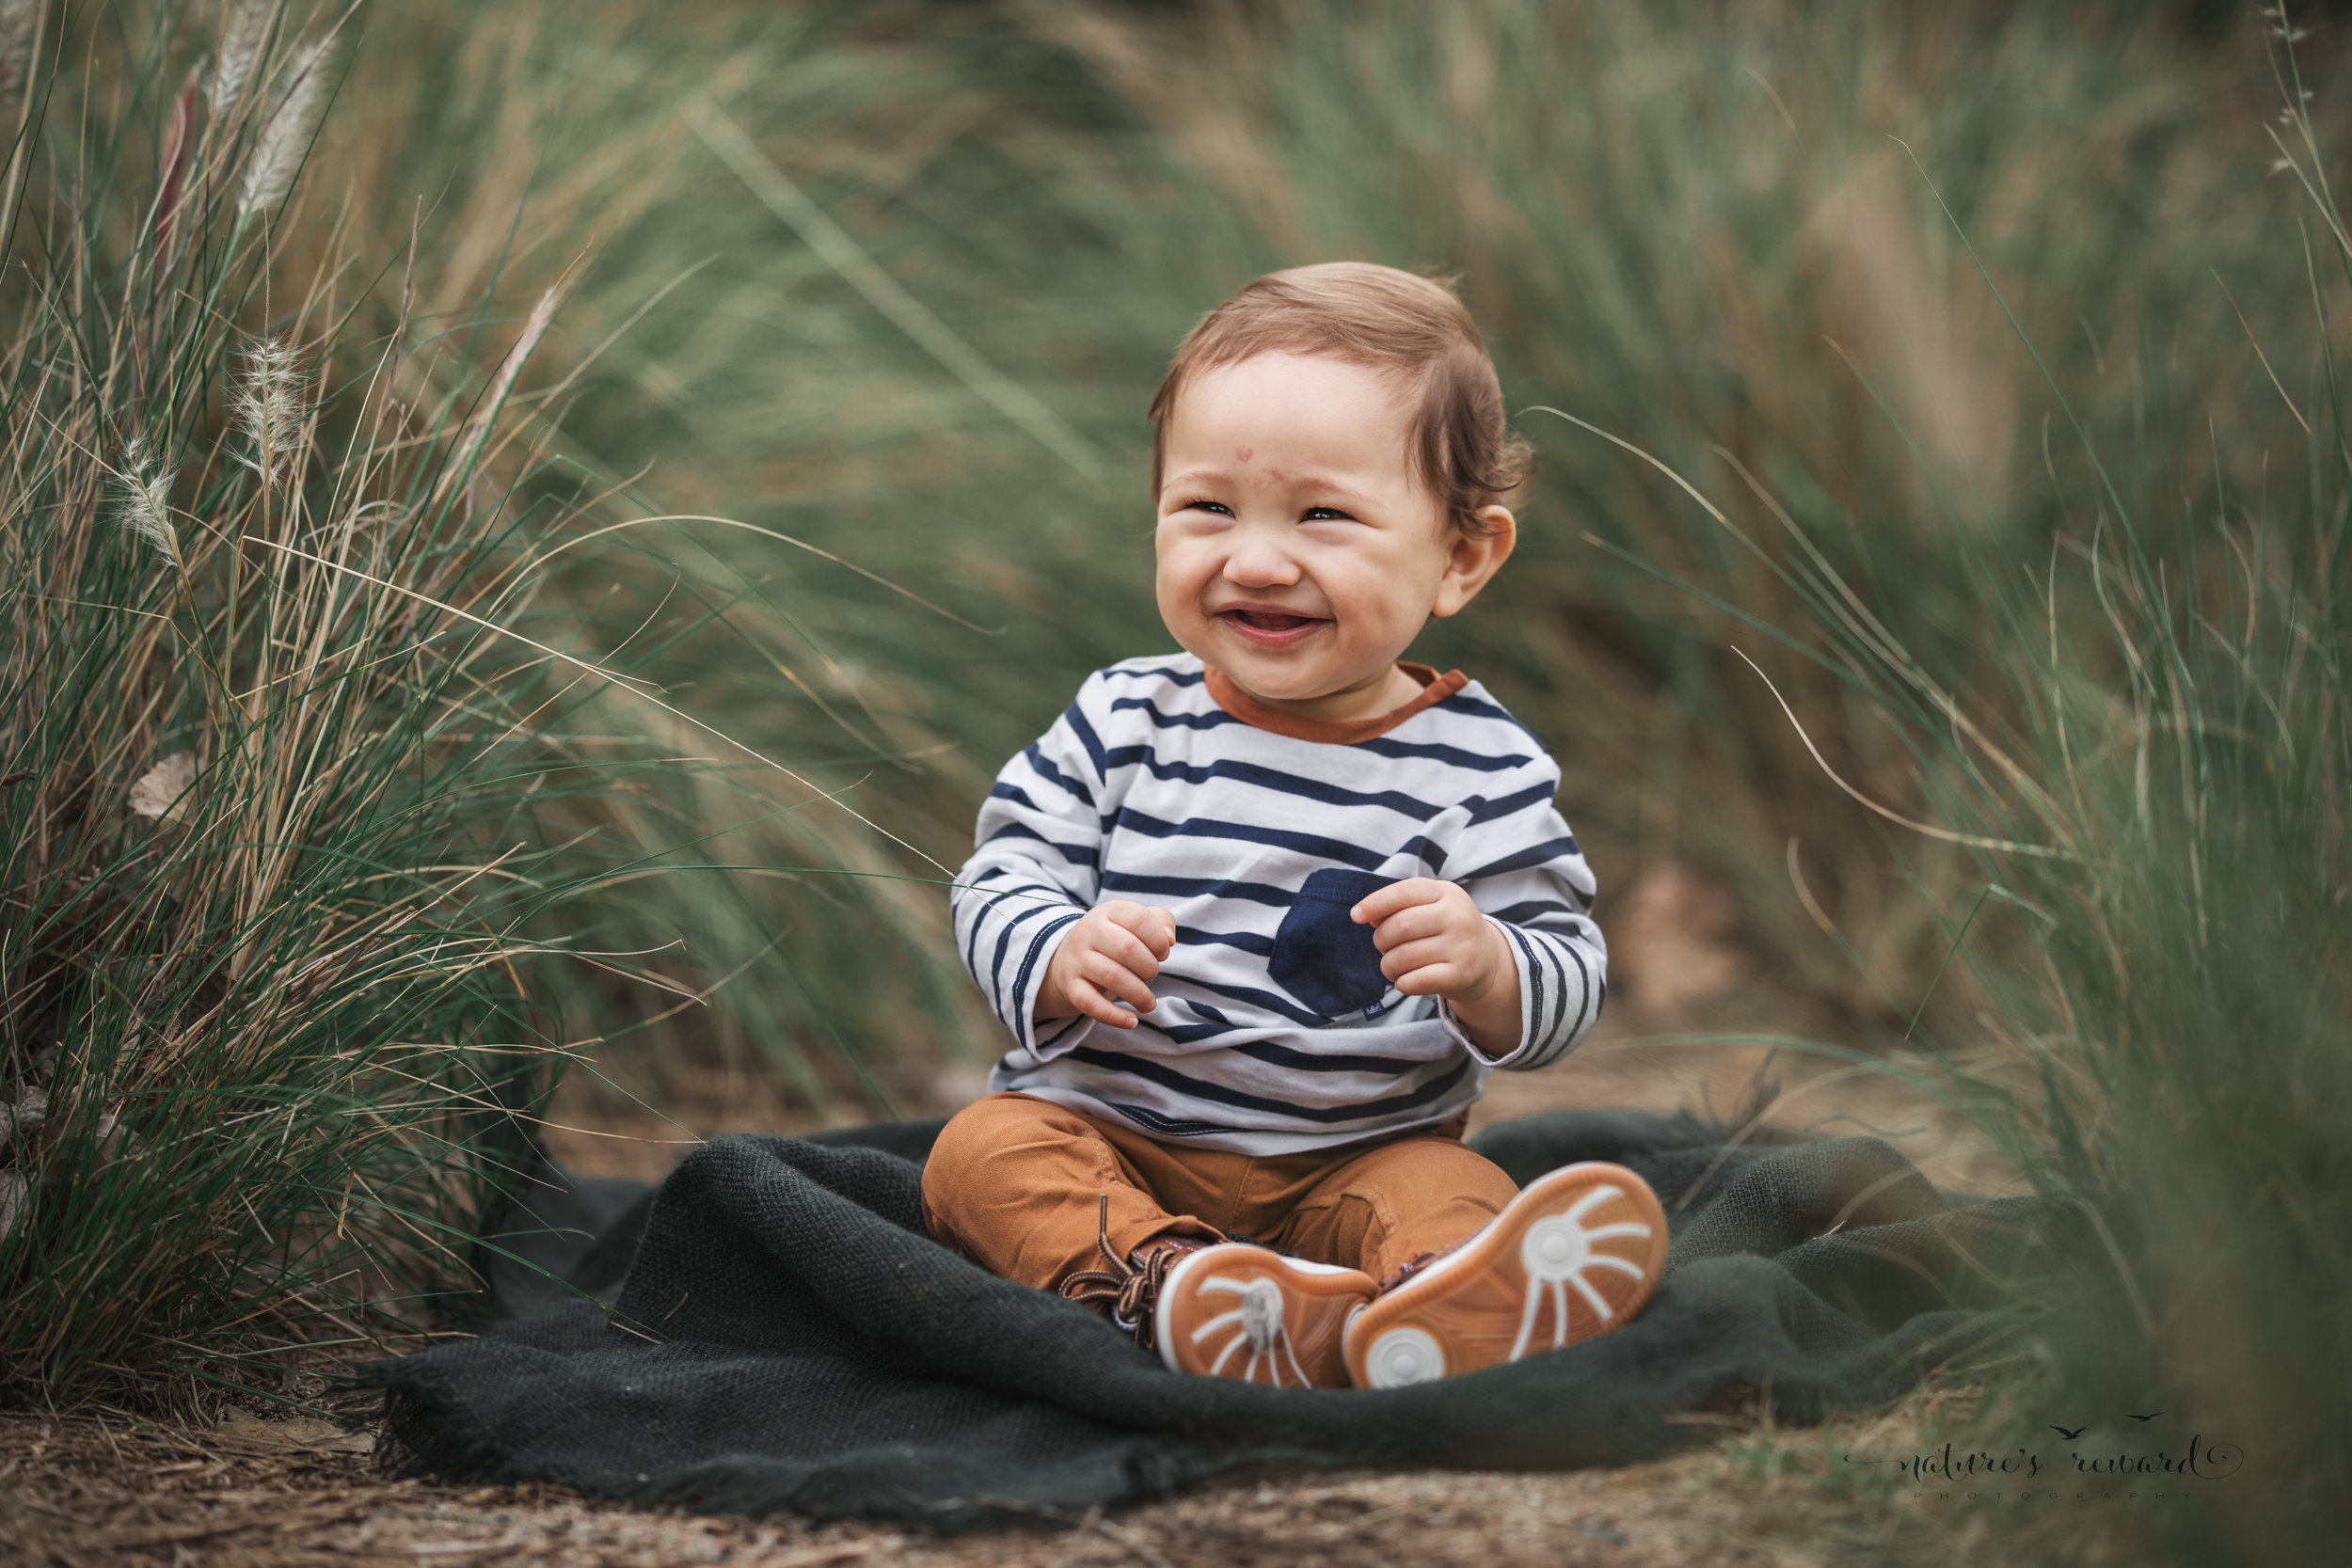 Beautiful baby boy in tans and a white and blue striped shirt in this portrait by Nature's Reward photography